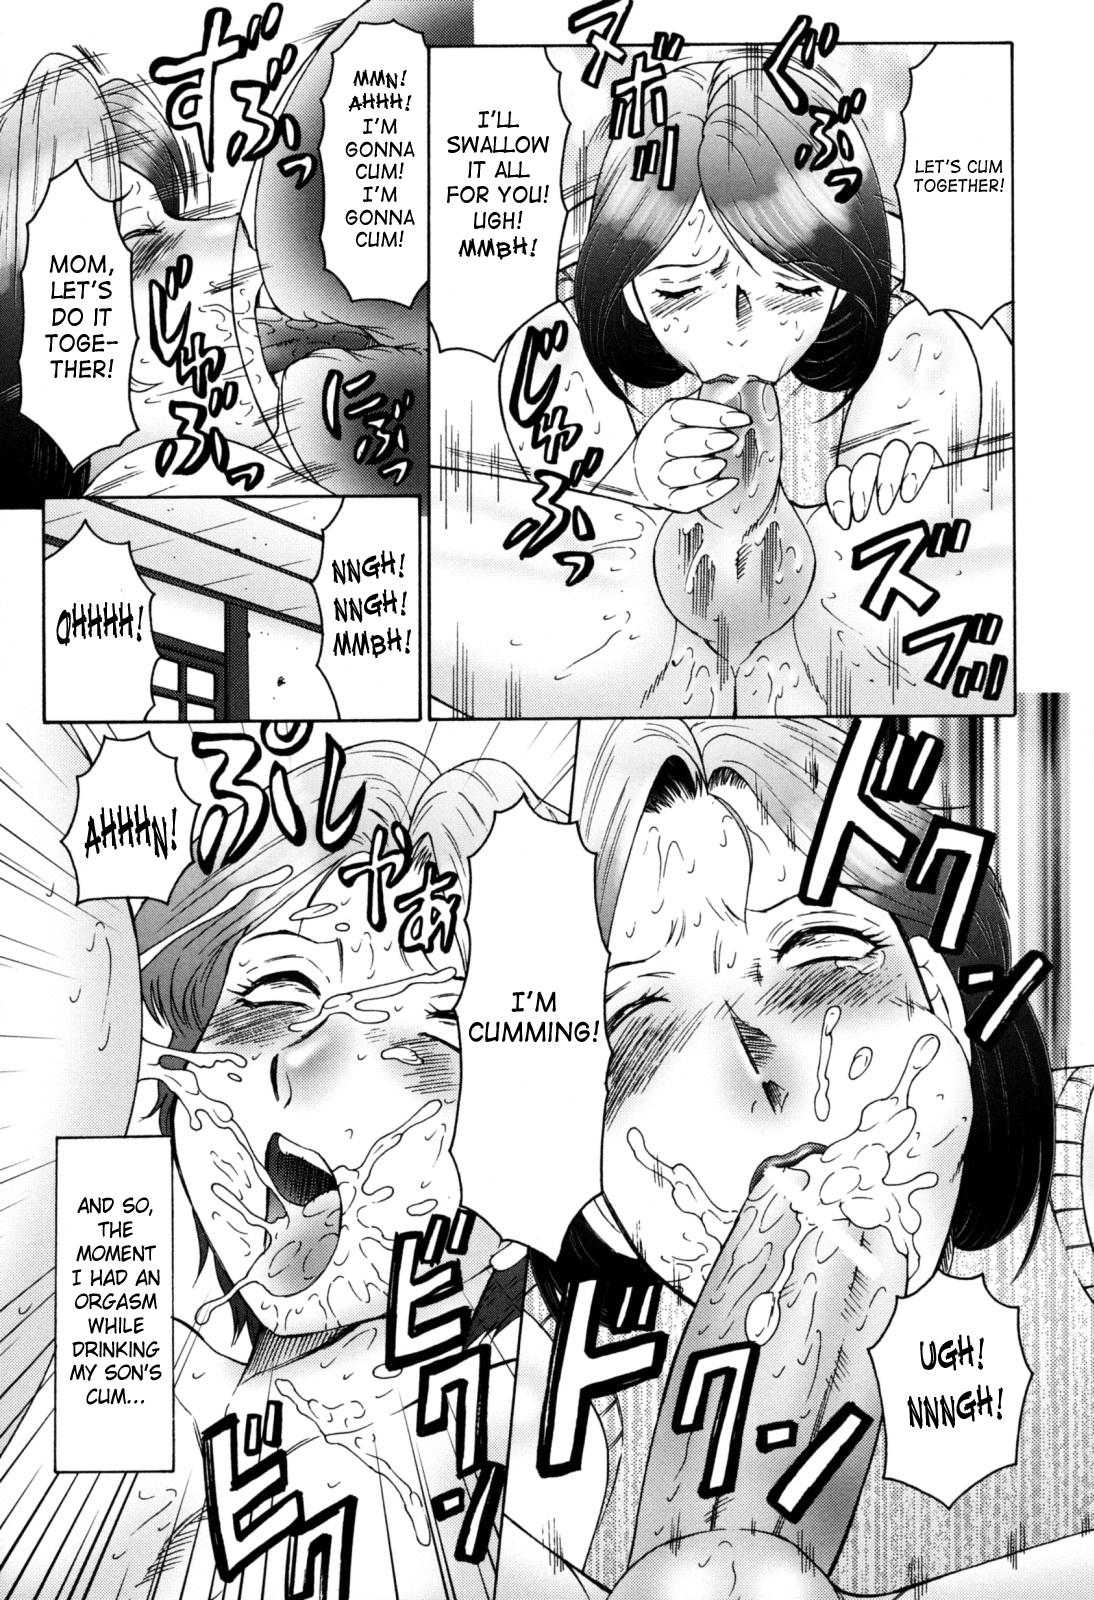 [Fuusen Club] Boshino Toriko - The Captive of Mother and the Son | Enslaved Mother and Son Ch. 1-5 [English] [SaHa] 56